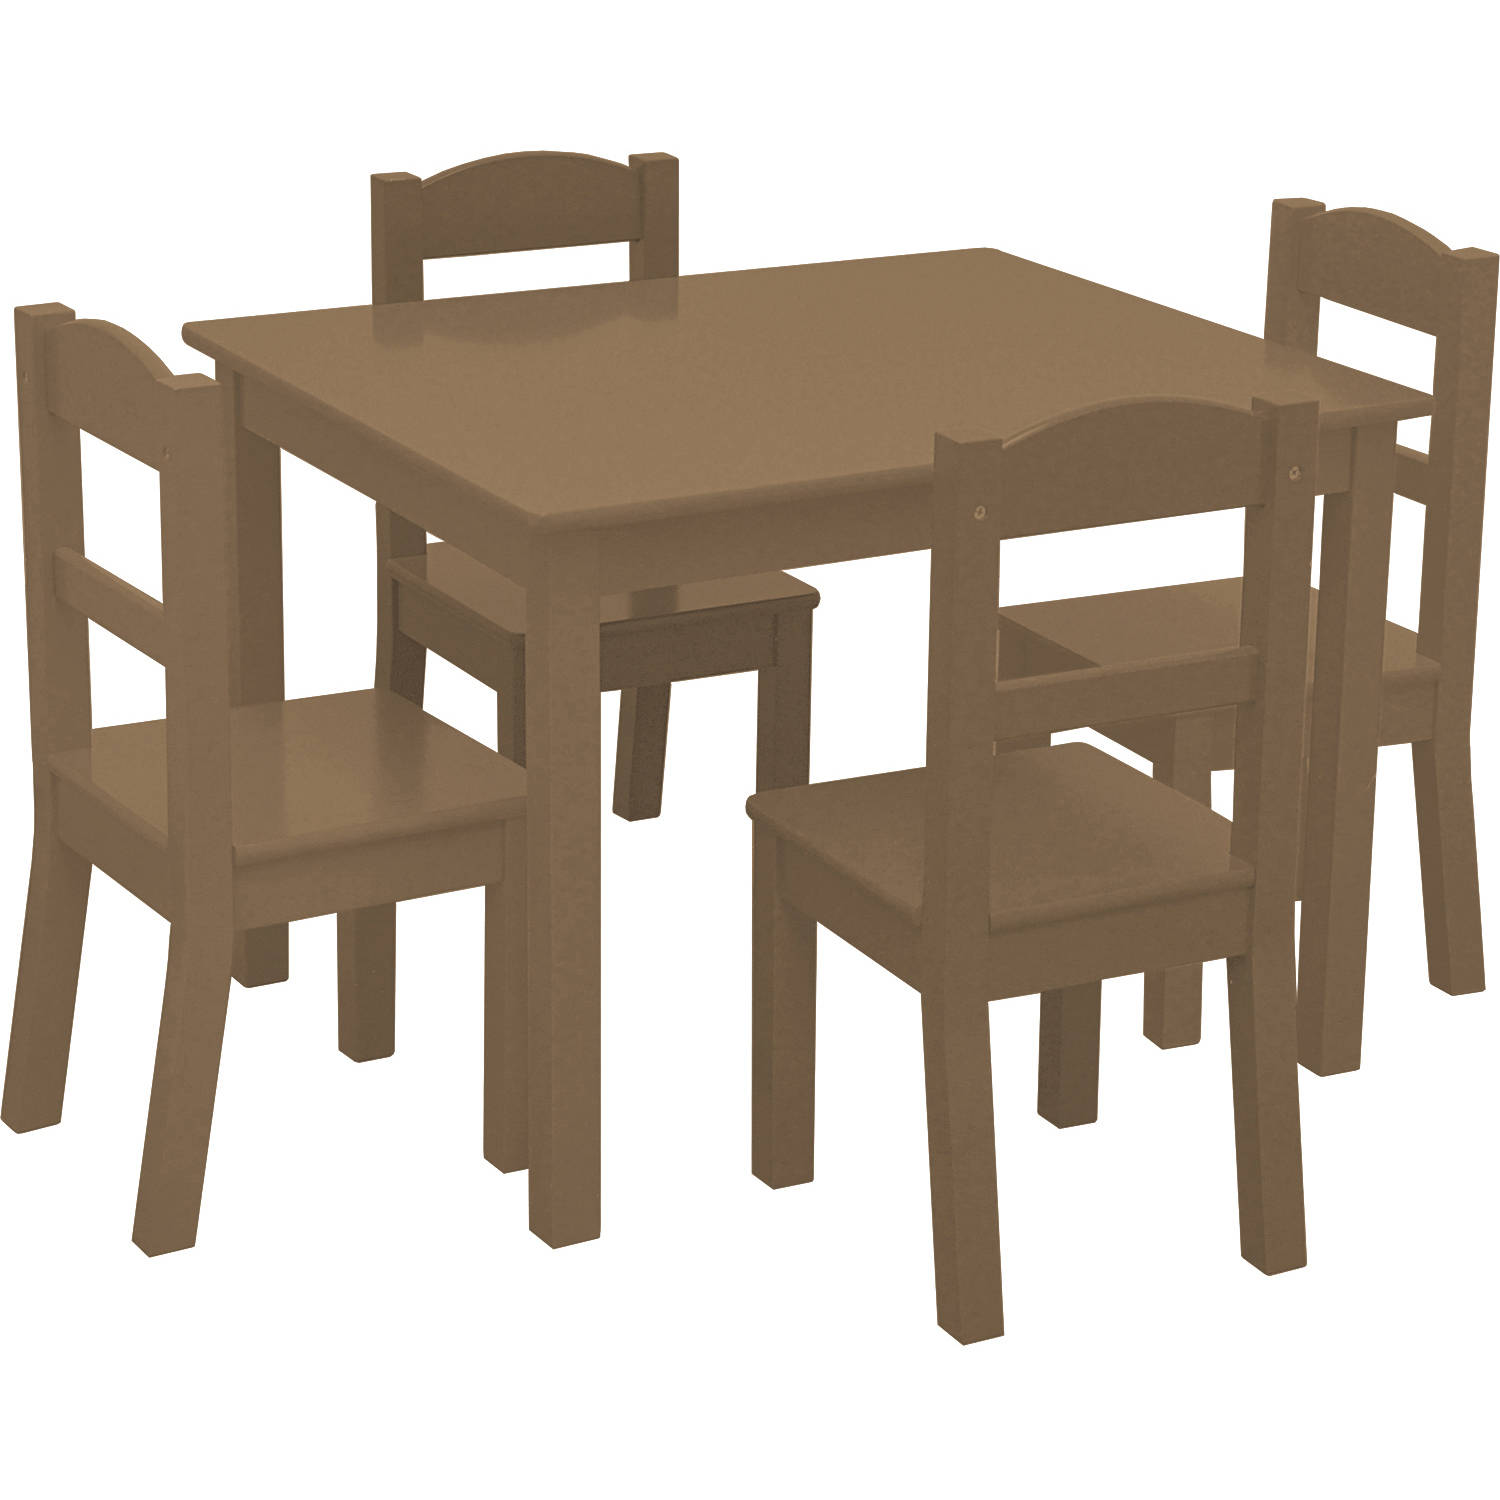 Children table and chairs wooden fancy design toddler table and chairs wood stunning decoration - Svan table and chair set ...